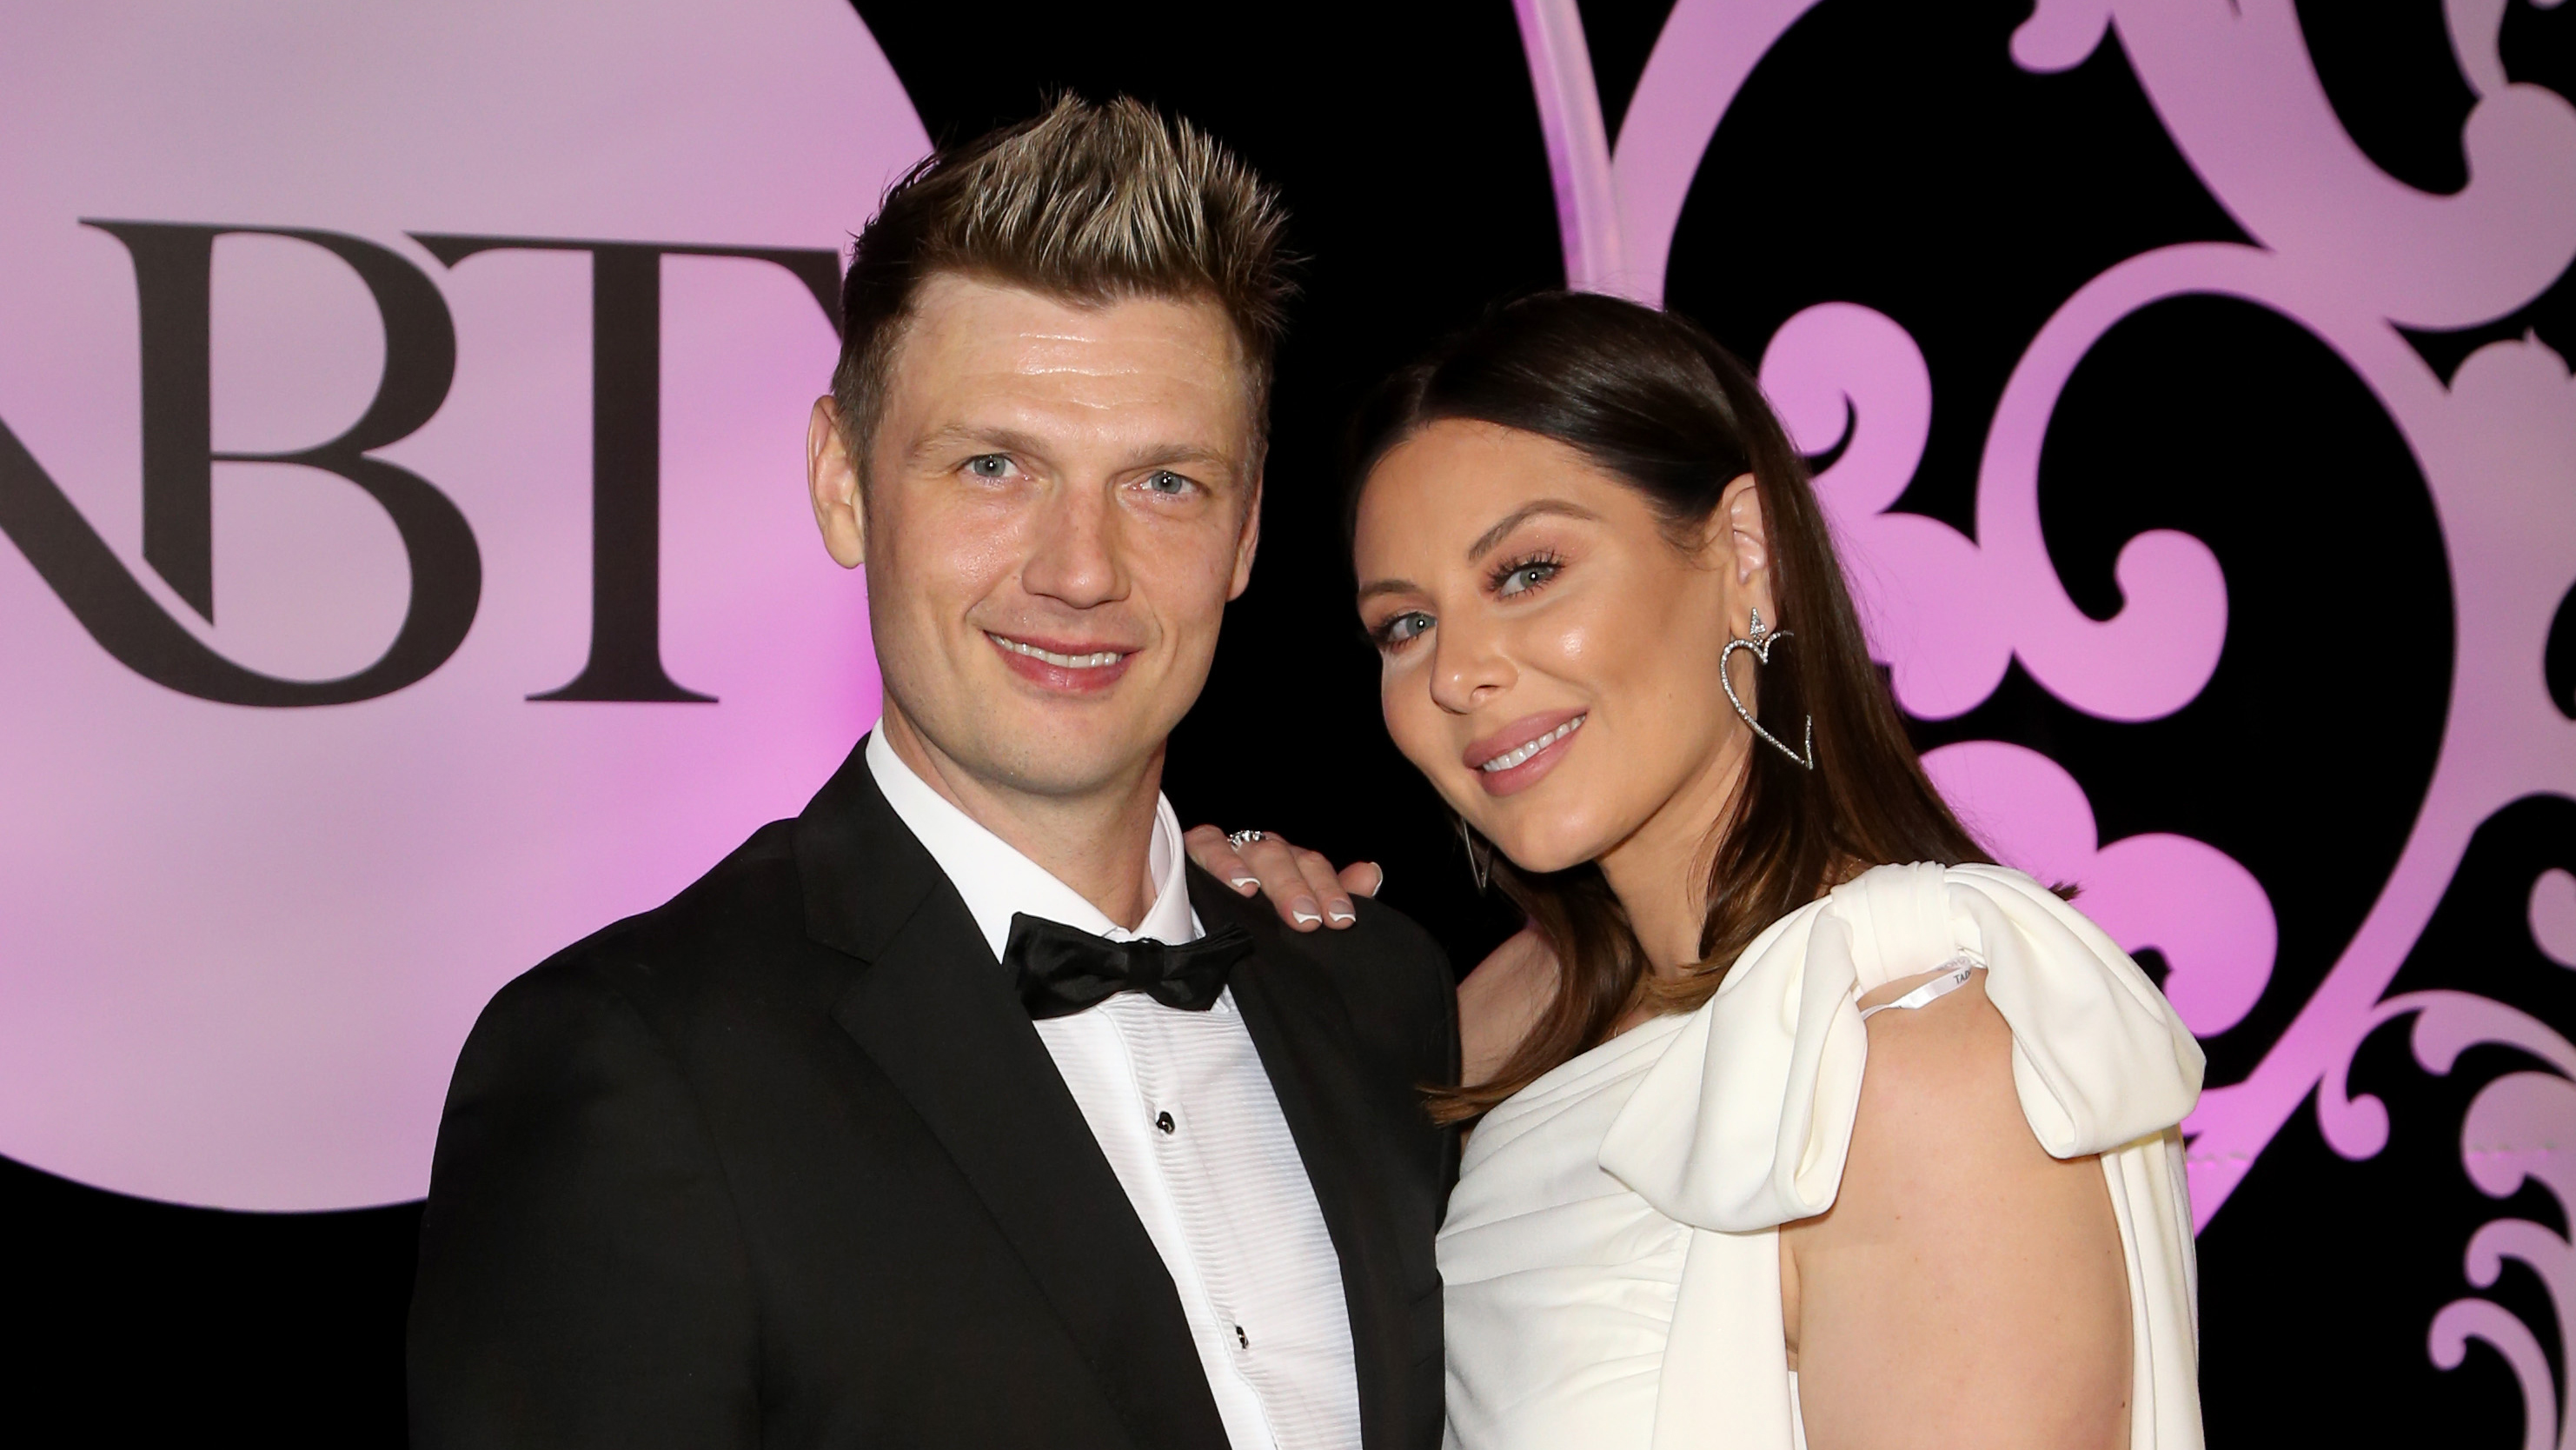 Nick Carter's wife Lauren didn't know she was pregnant for over 5 months – Fox News